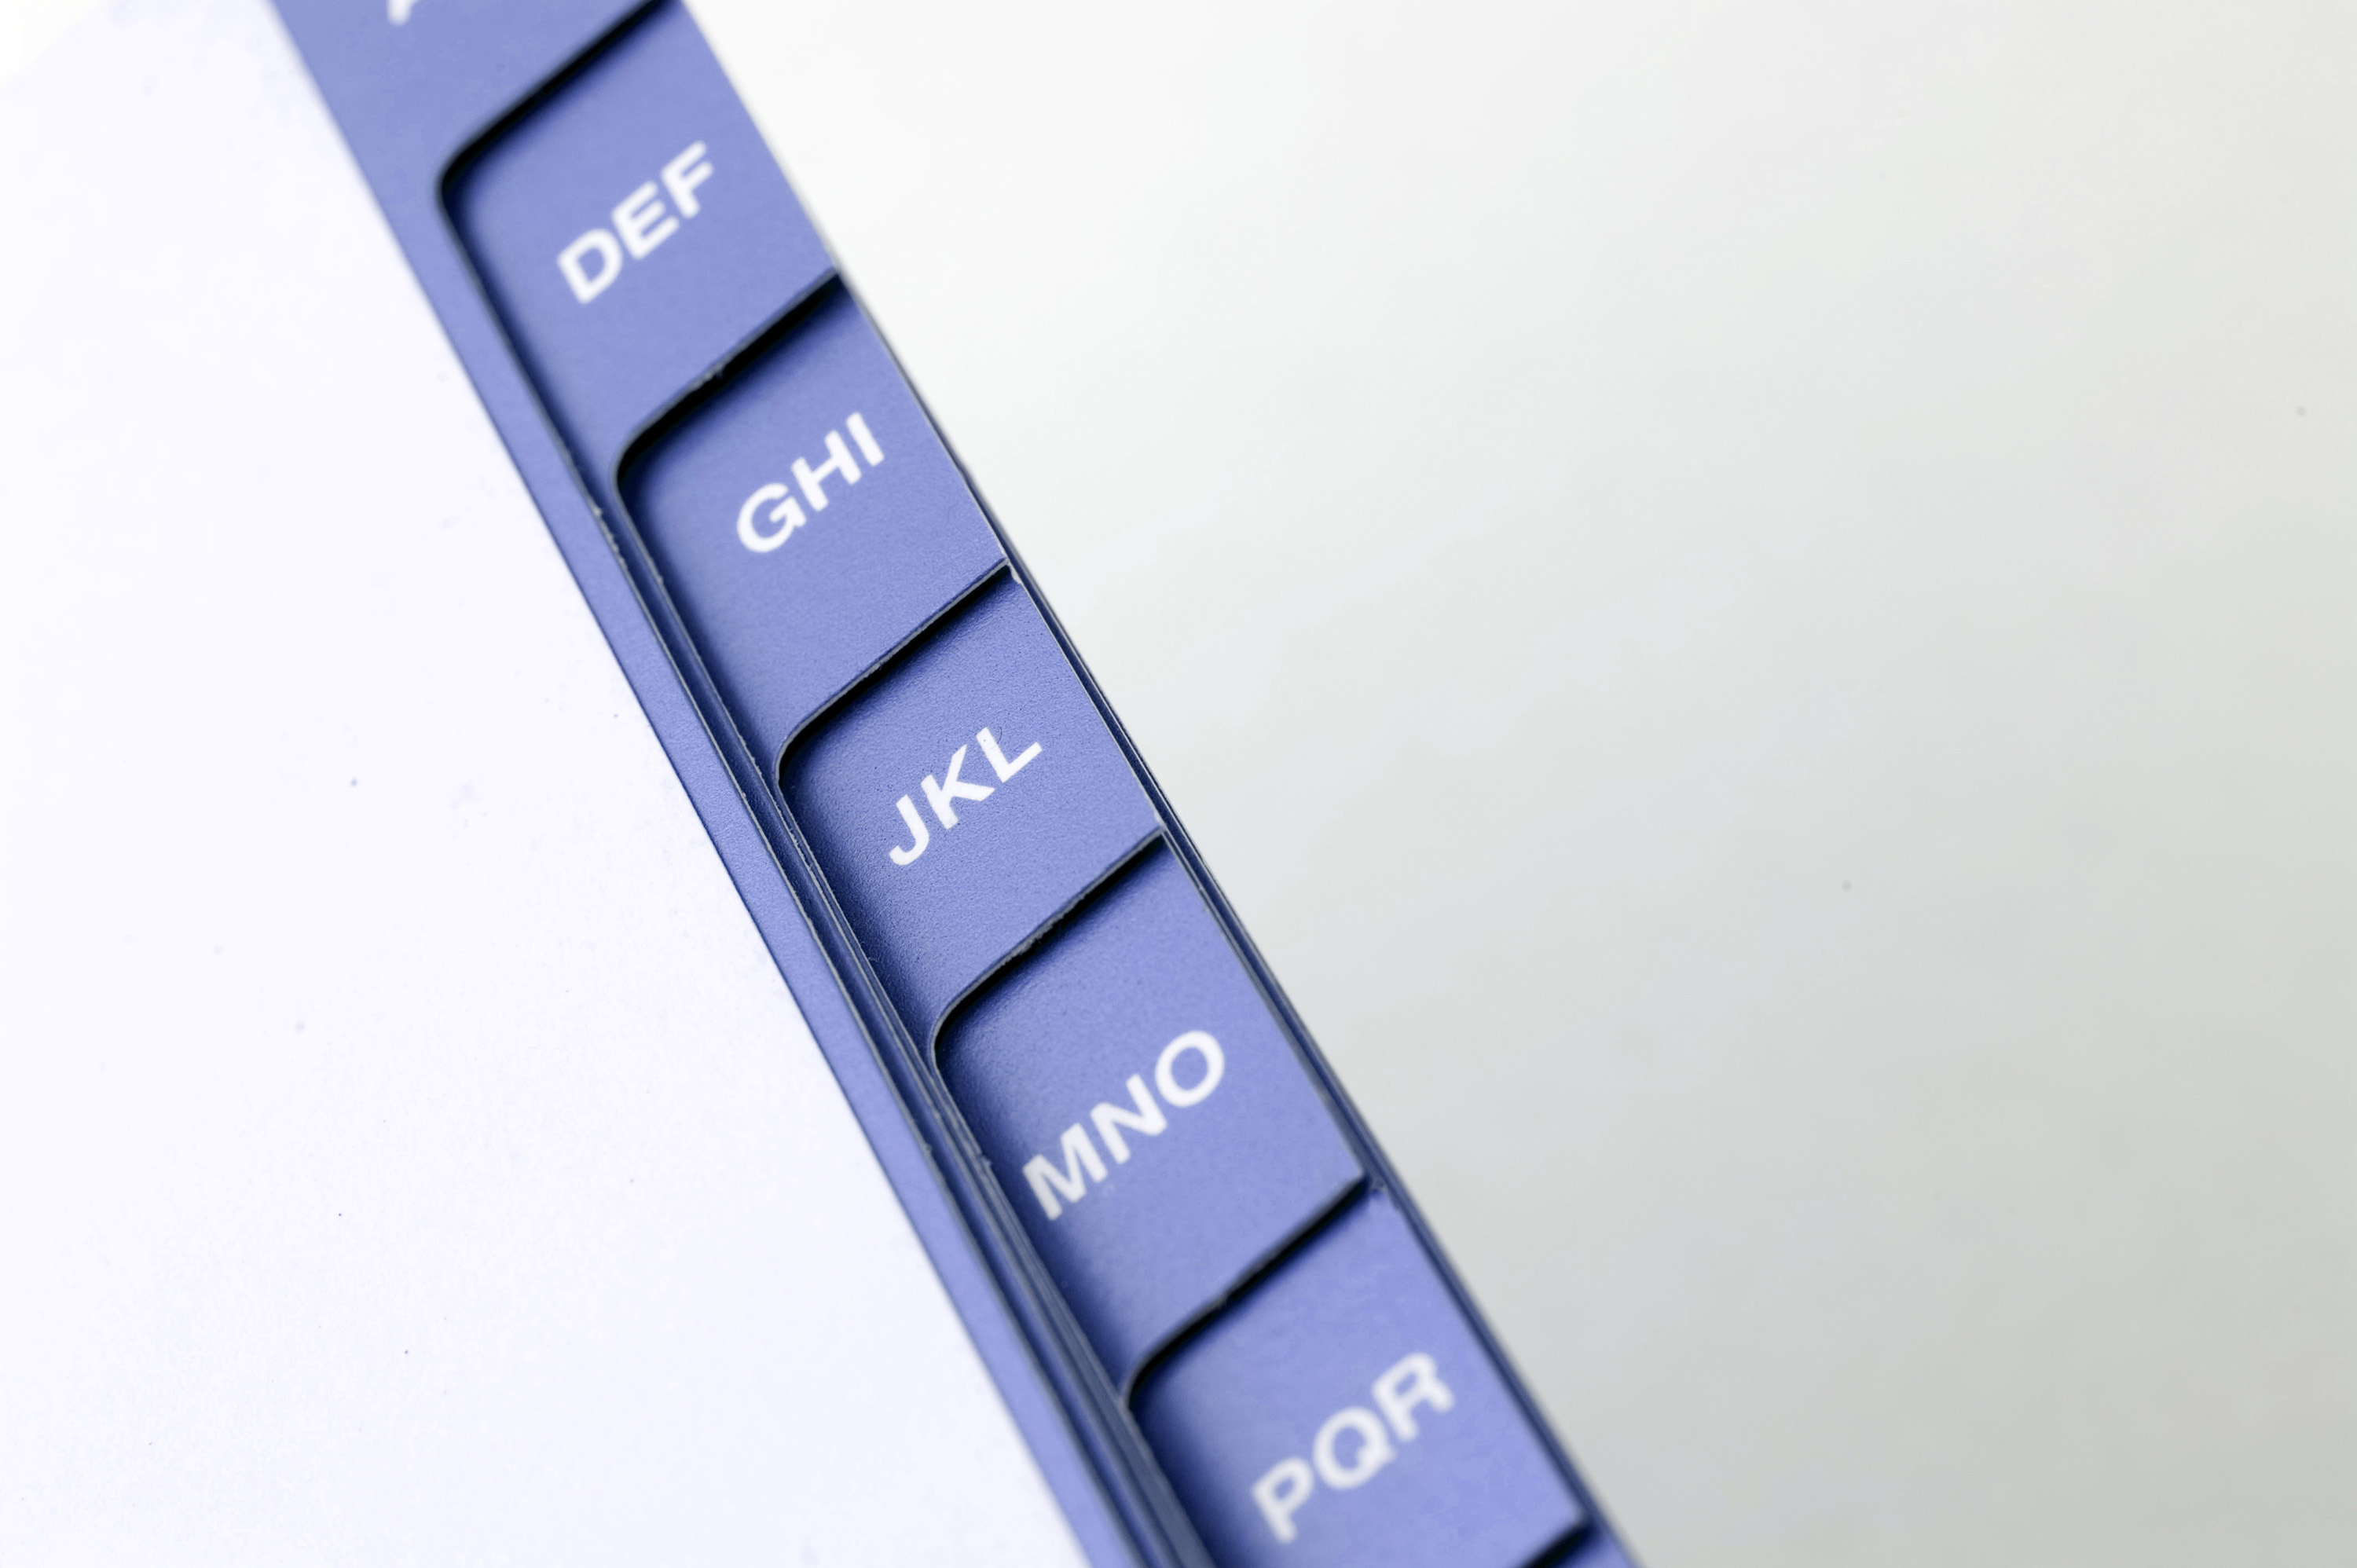 free image of index on an address book